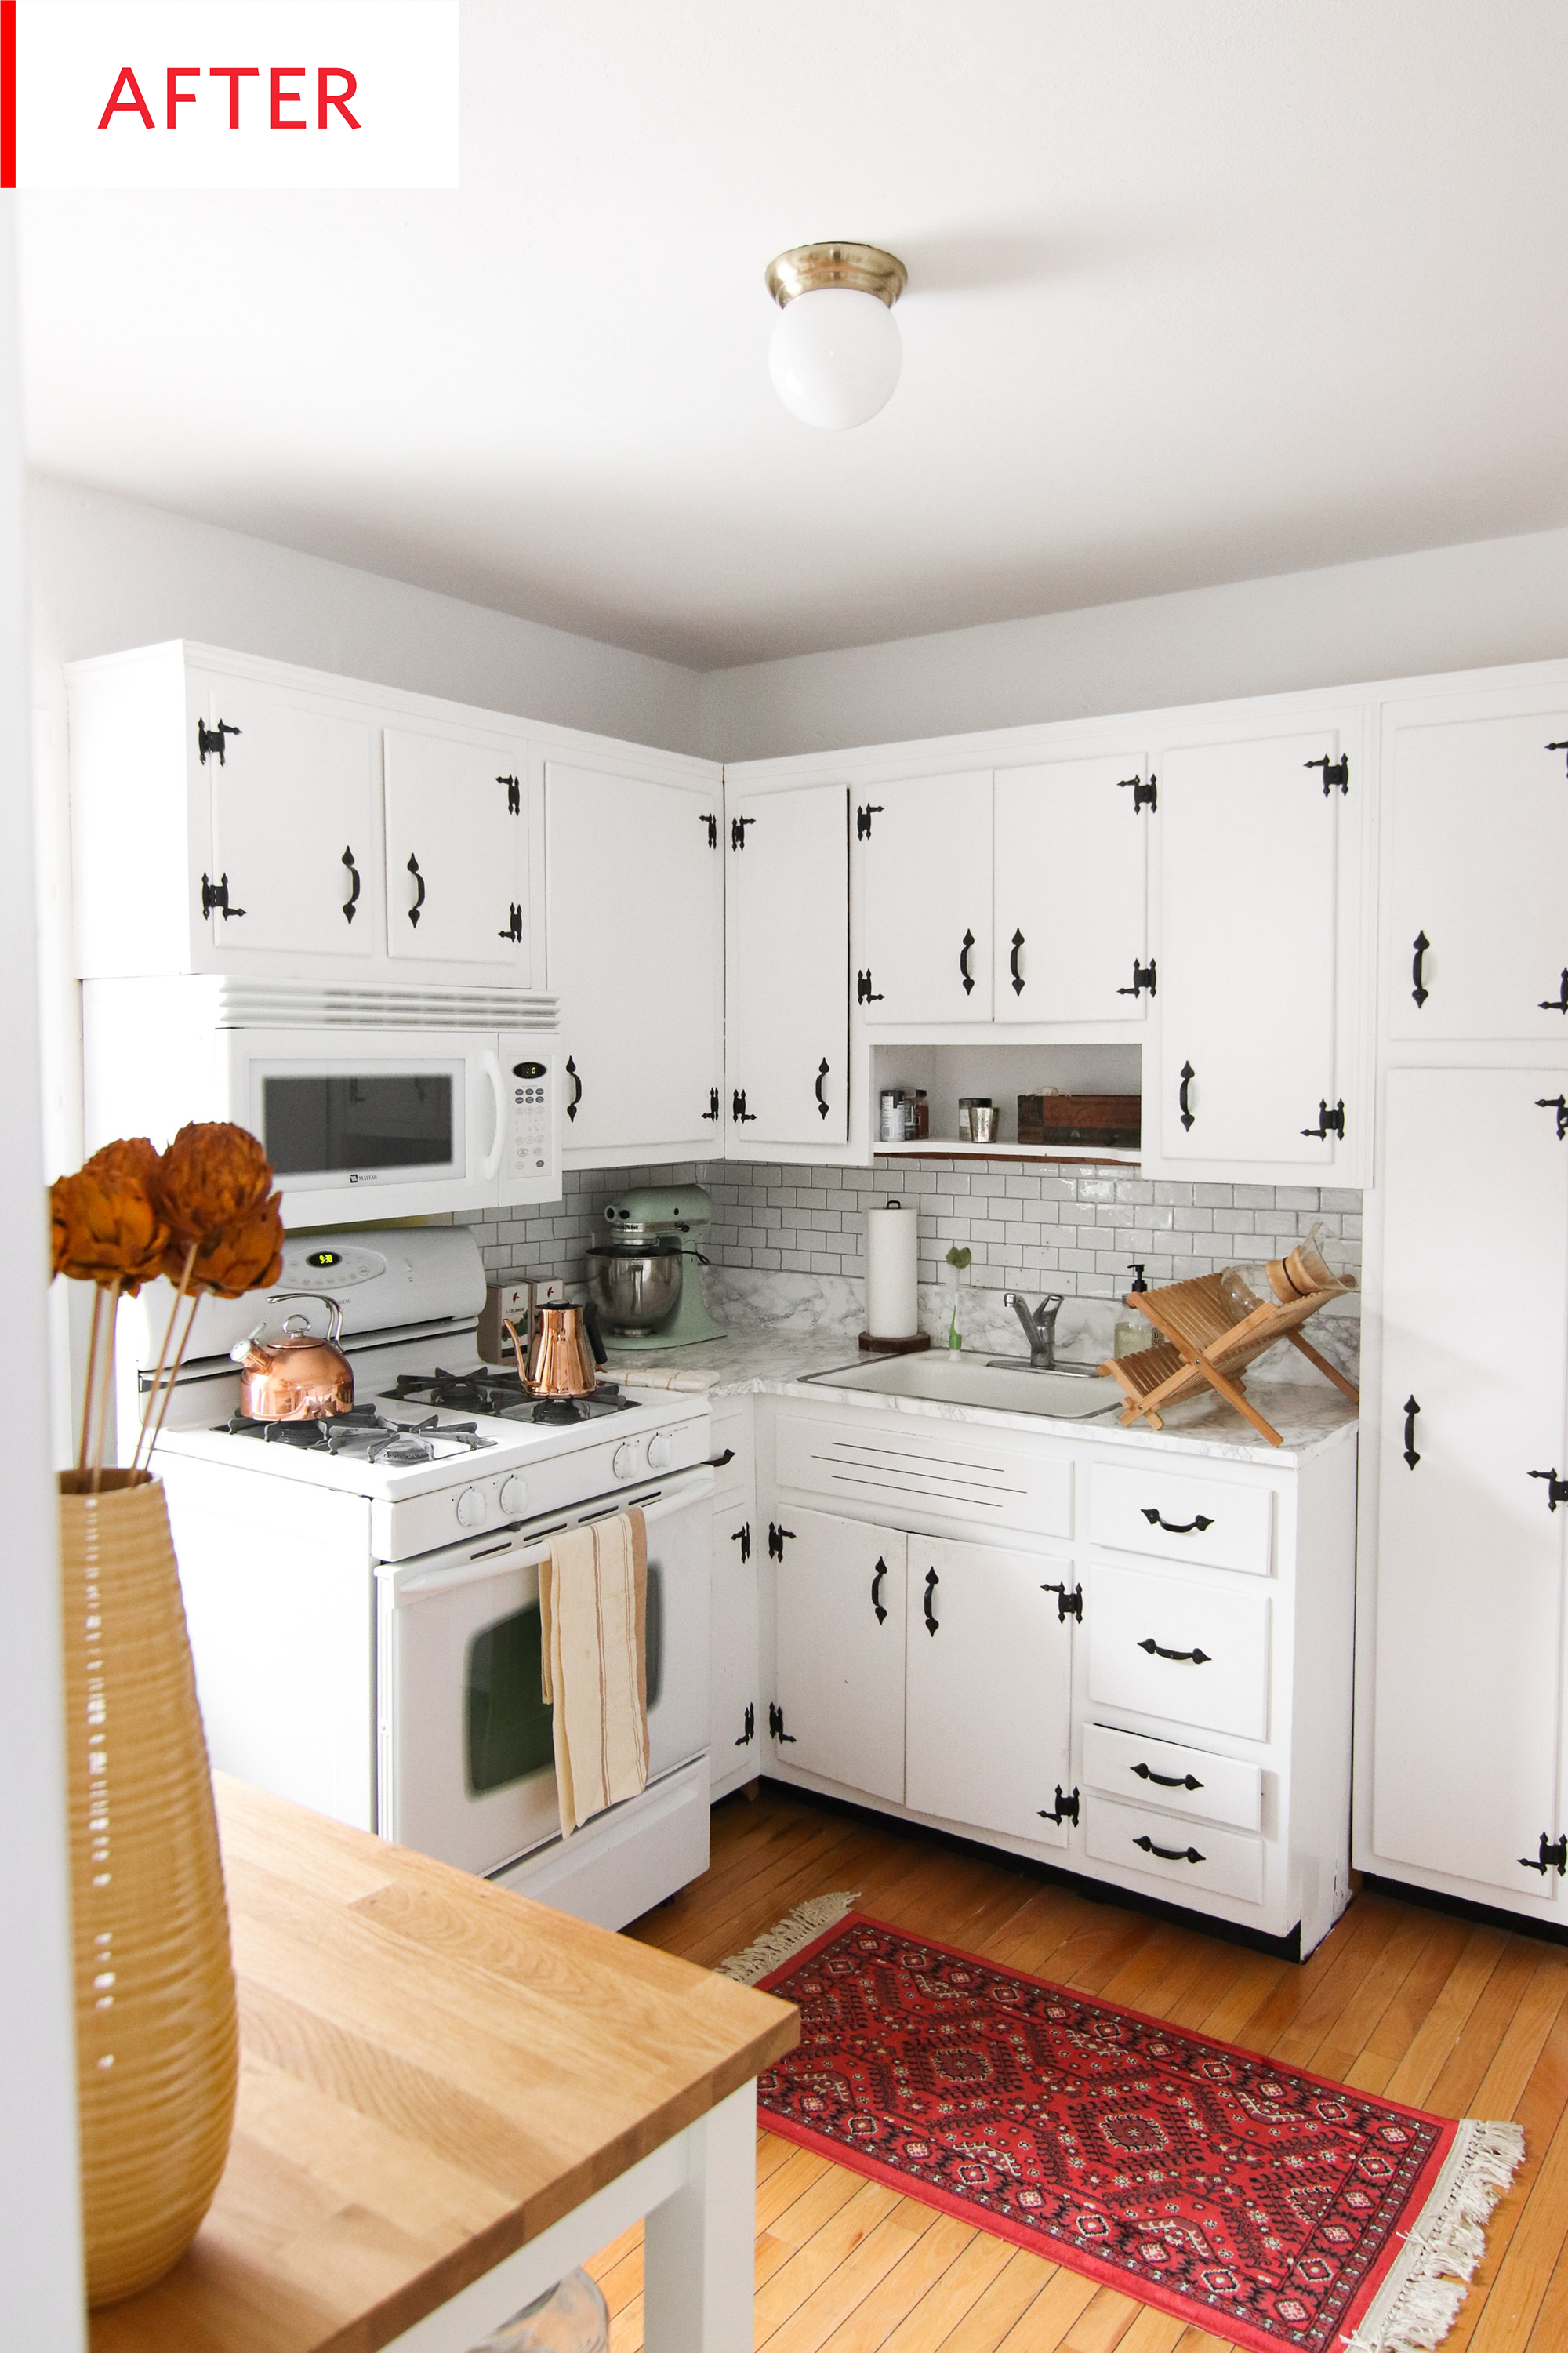 The Secret to Successfully Painting Old Kitchen Cabinets | Kitchens ...